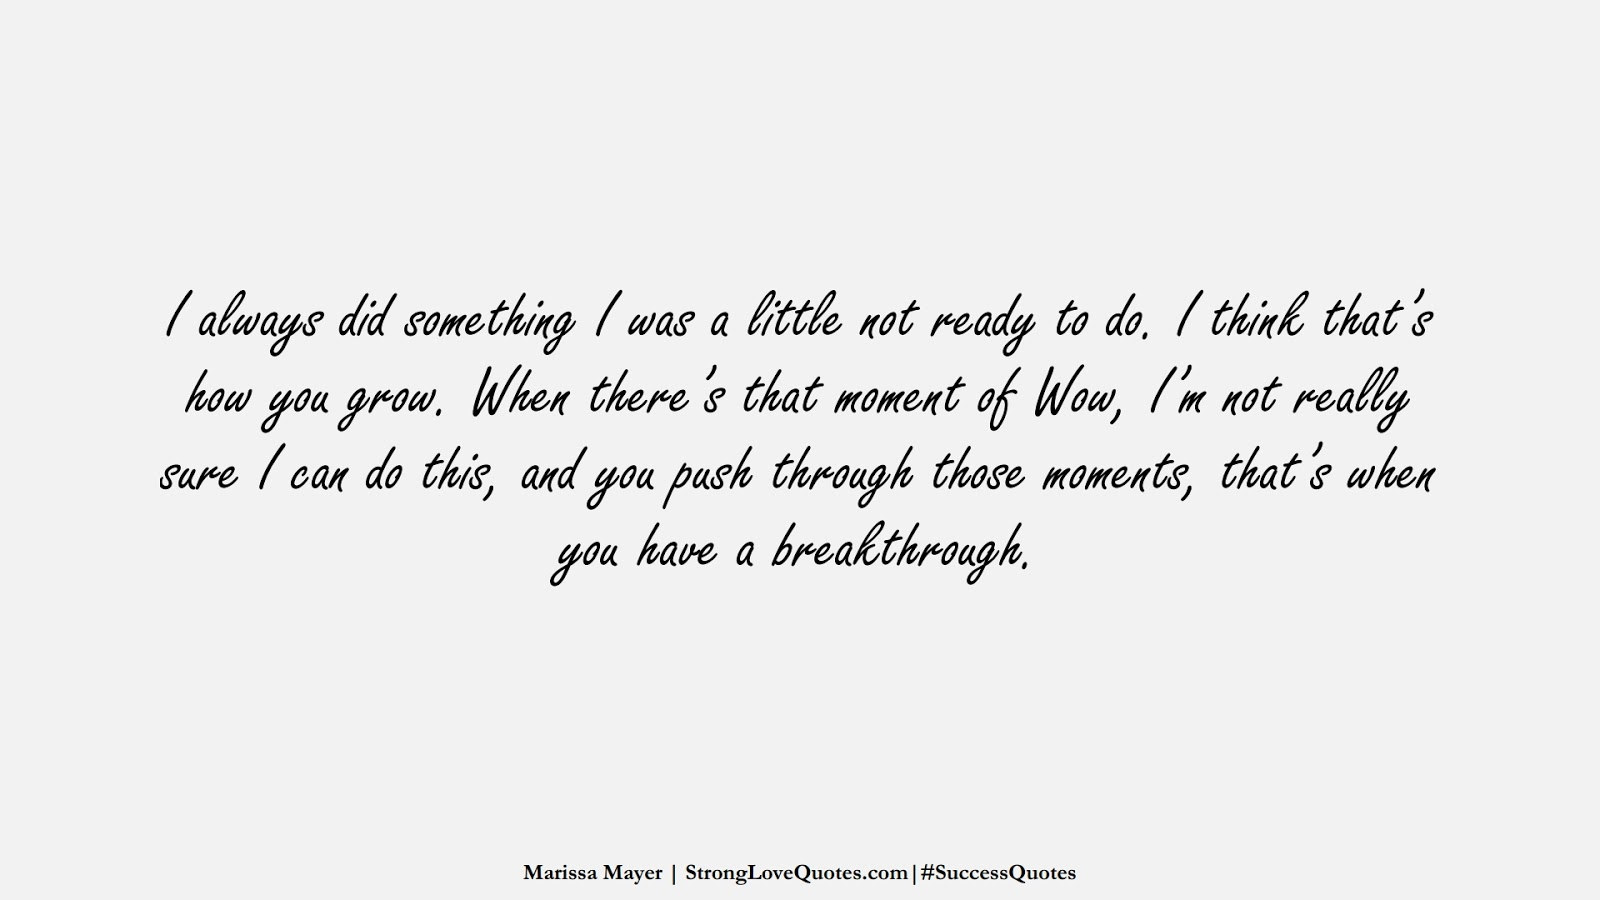 I always did something I was a little not ready to do. I think that's how you grow. When there's that moment of Wow, I'm not really sure I can do this, and you push through those moments, that's when you have a breakthrough. (Marissa Mayer);  #SuccessQuotes